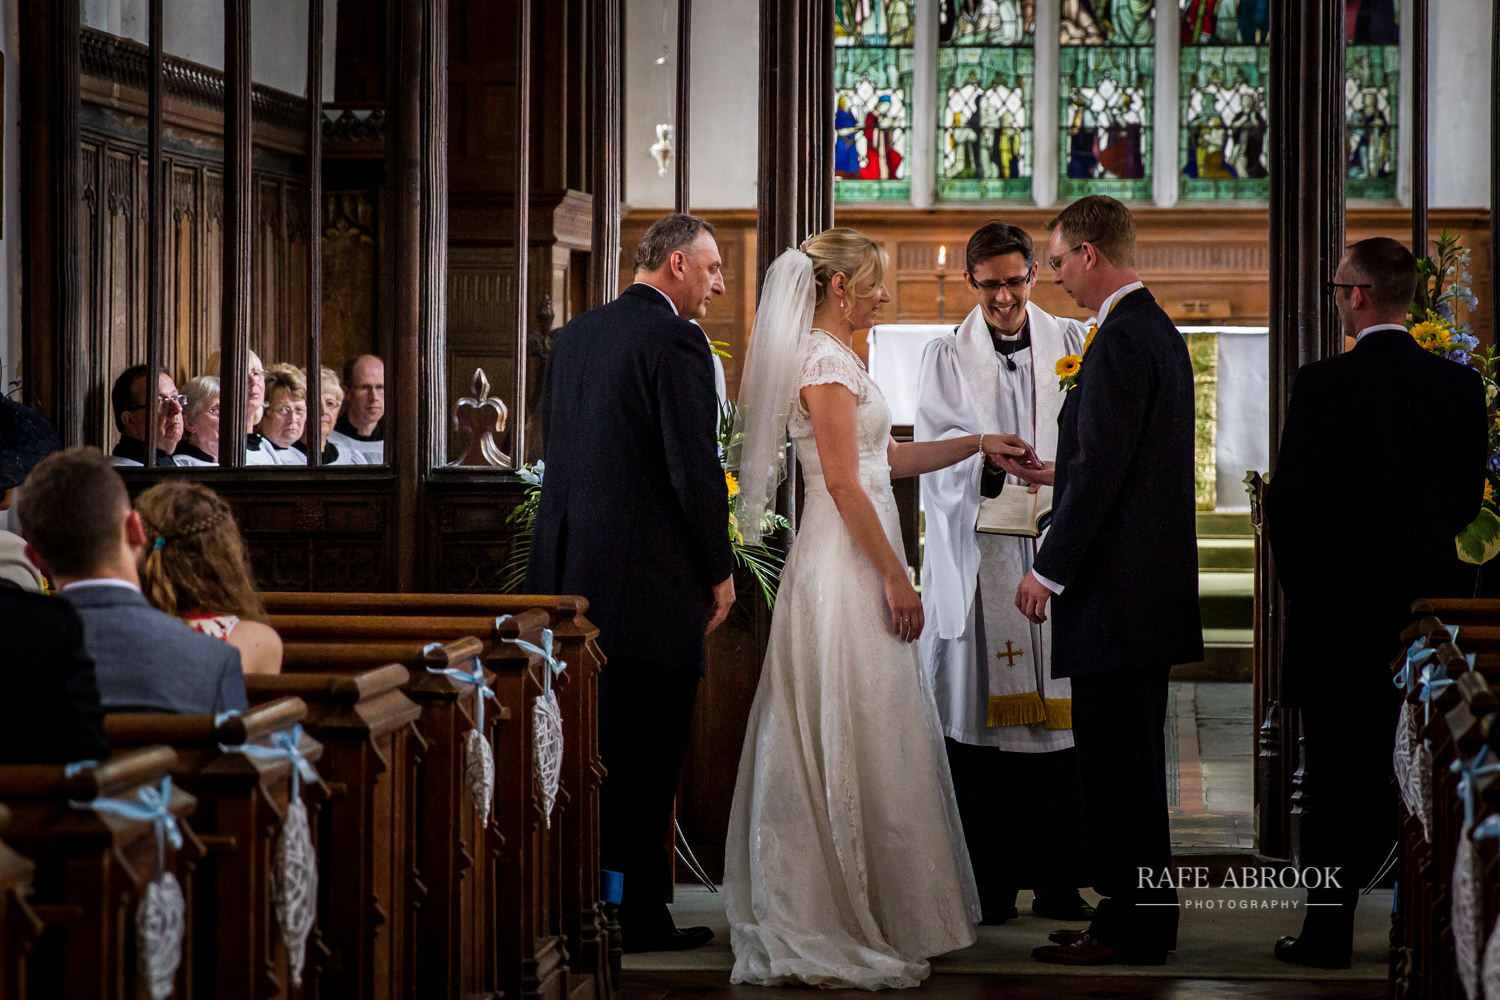 minstrel court wedding royston cambridge hertfordshire wedding photographer-1155.jpg